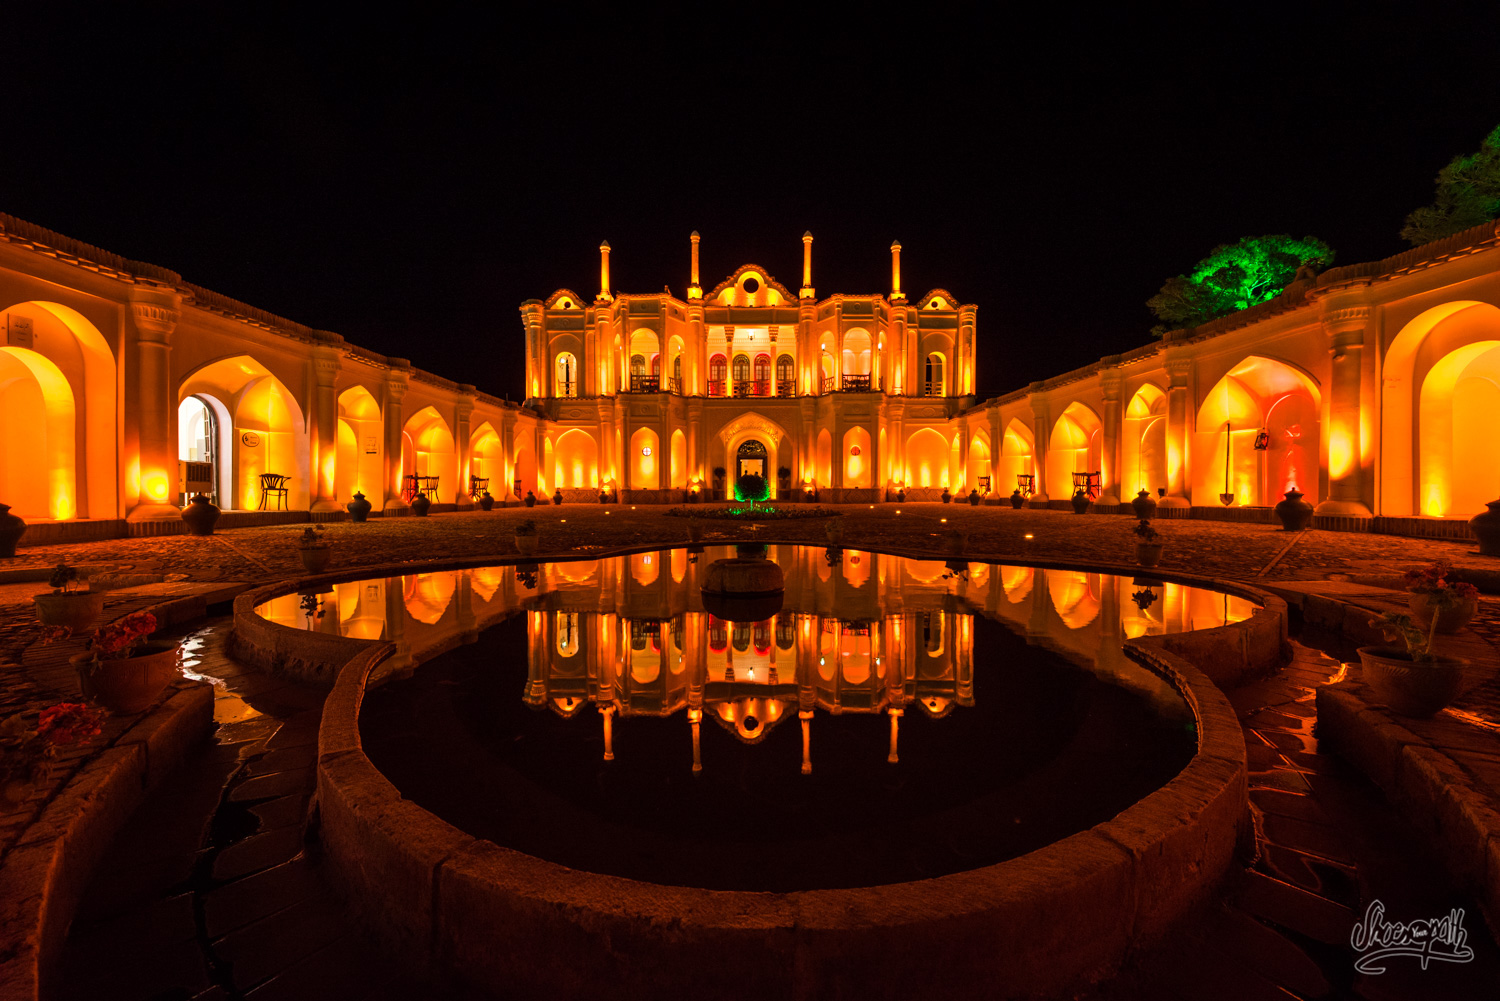 Fathabad garden, just outside Kerman